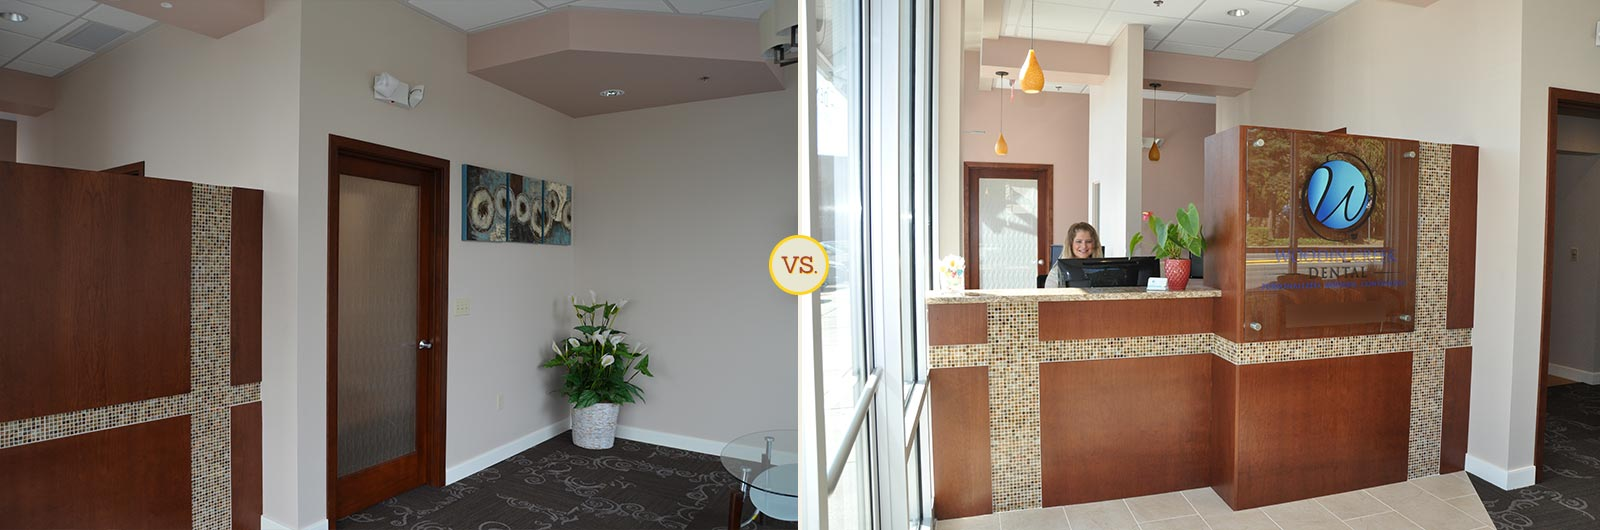 Side-by-side comparison of dental practice front desk photos